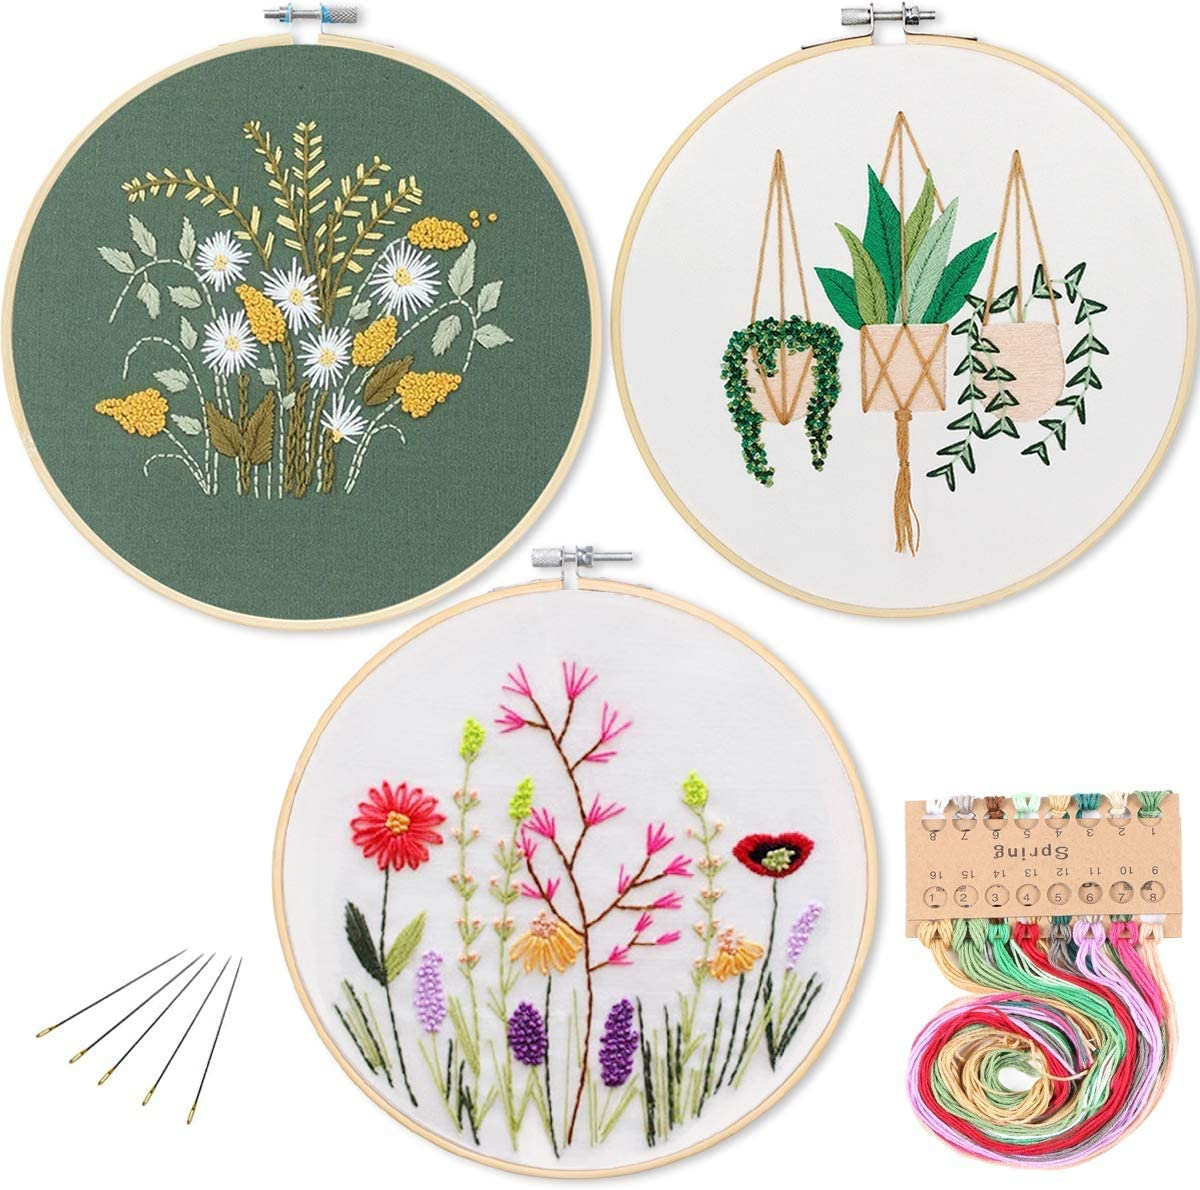 3 Pack Cross Stitch Set with 3 Patterns Ideal for Beginner /& All Embroidery Lovers KATUMO Embroidery Starter Kit Color Threads Tools Kit Full Range of Stamped Embroidery Kits with A Embroidery Hoop